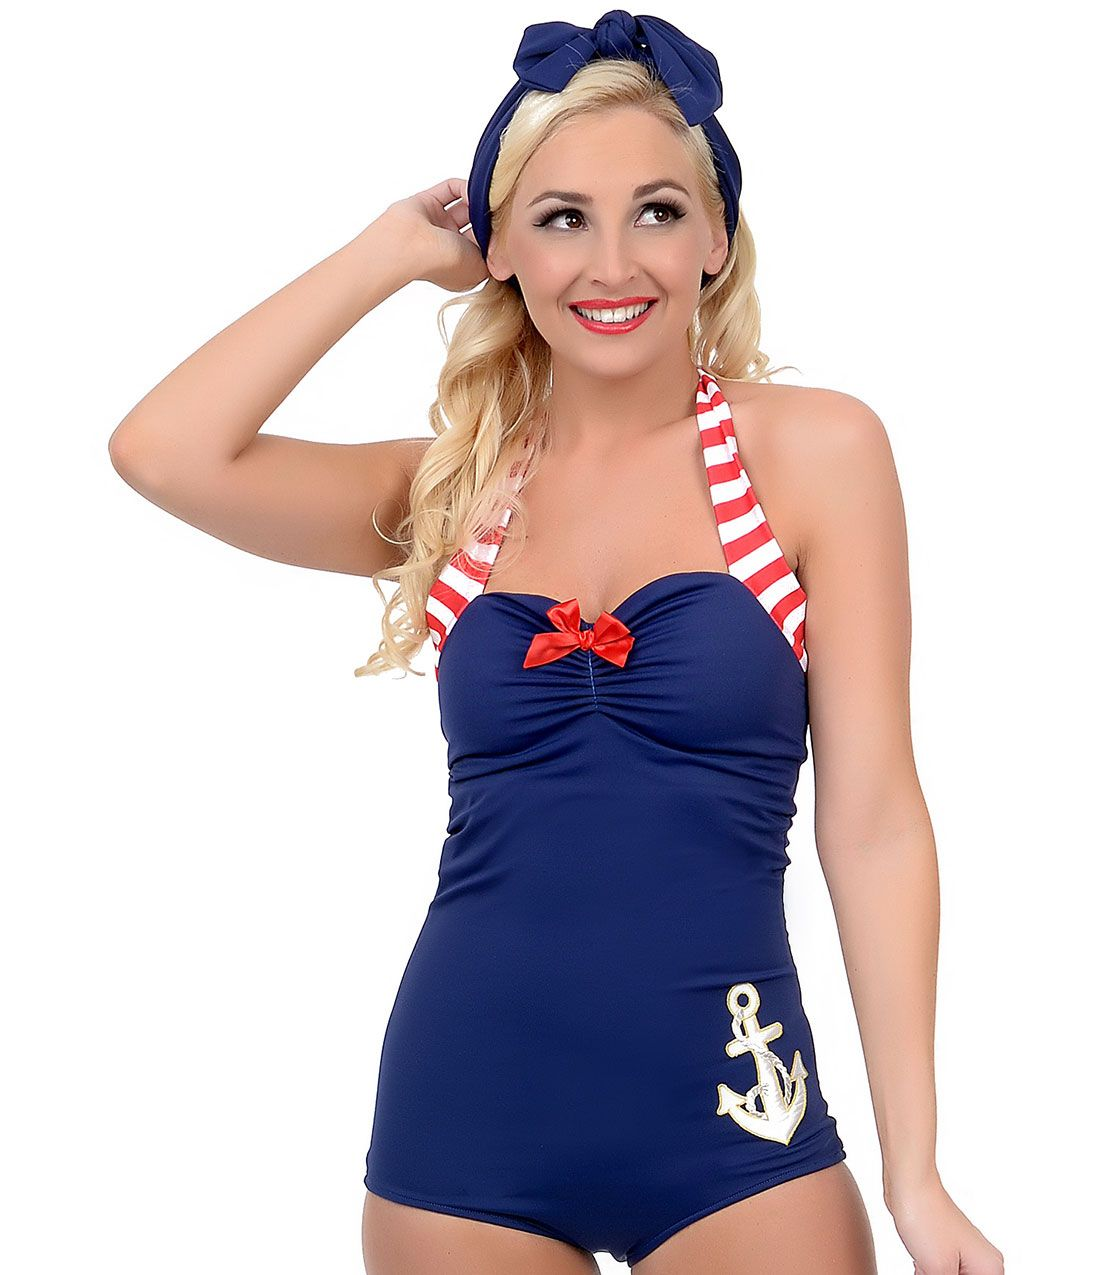 f5c6b99bf6f96 Vintage 1950s Style Pin-Up Navy Anchors Away Maillot Swimsuit $52.00 AT  vintagedancer.com